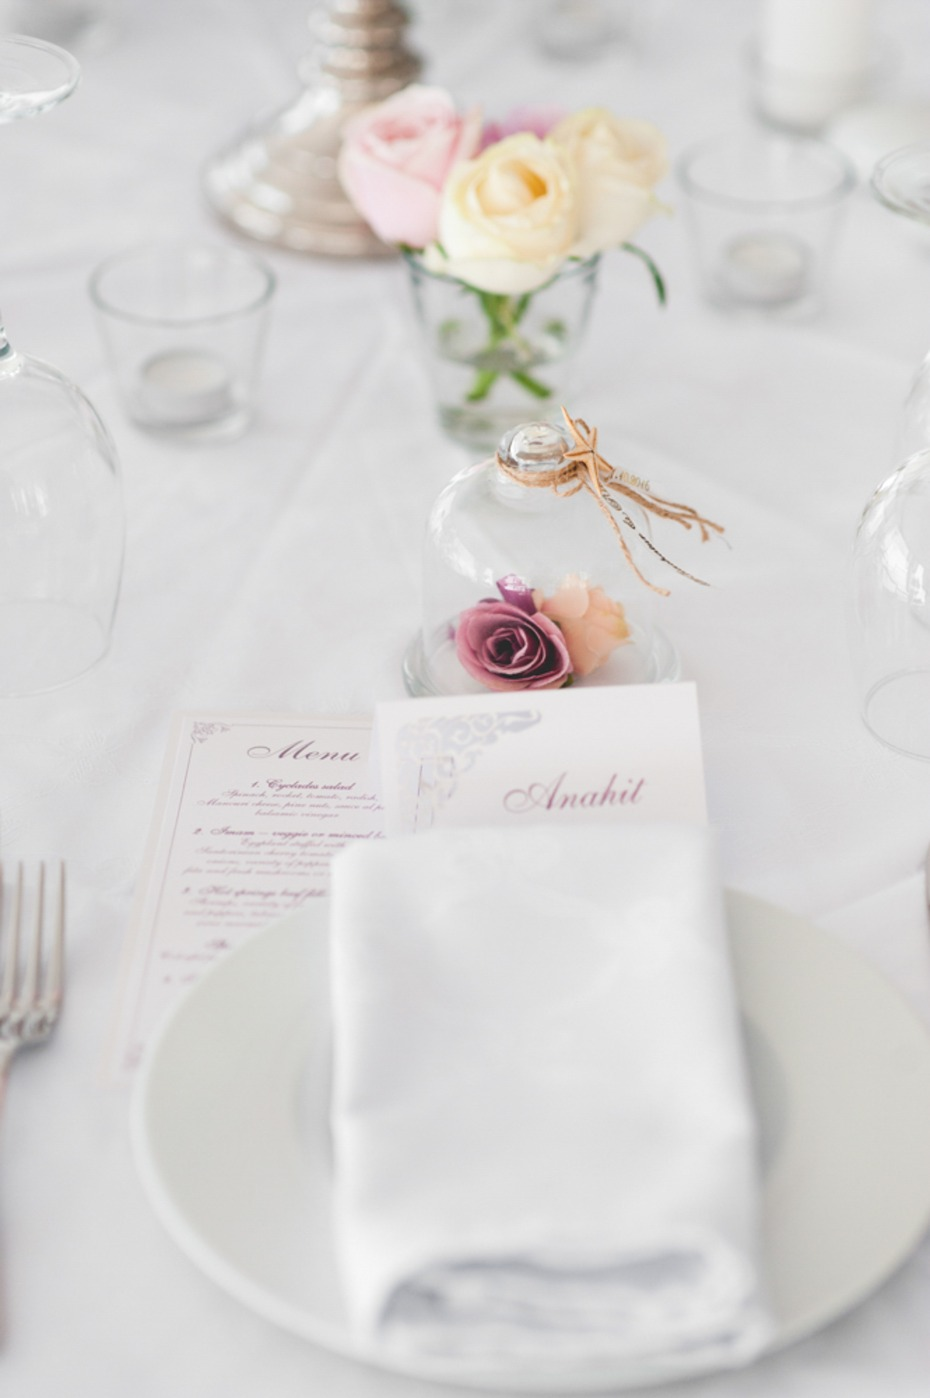 Sweet and simple table decor